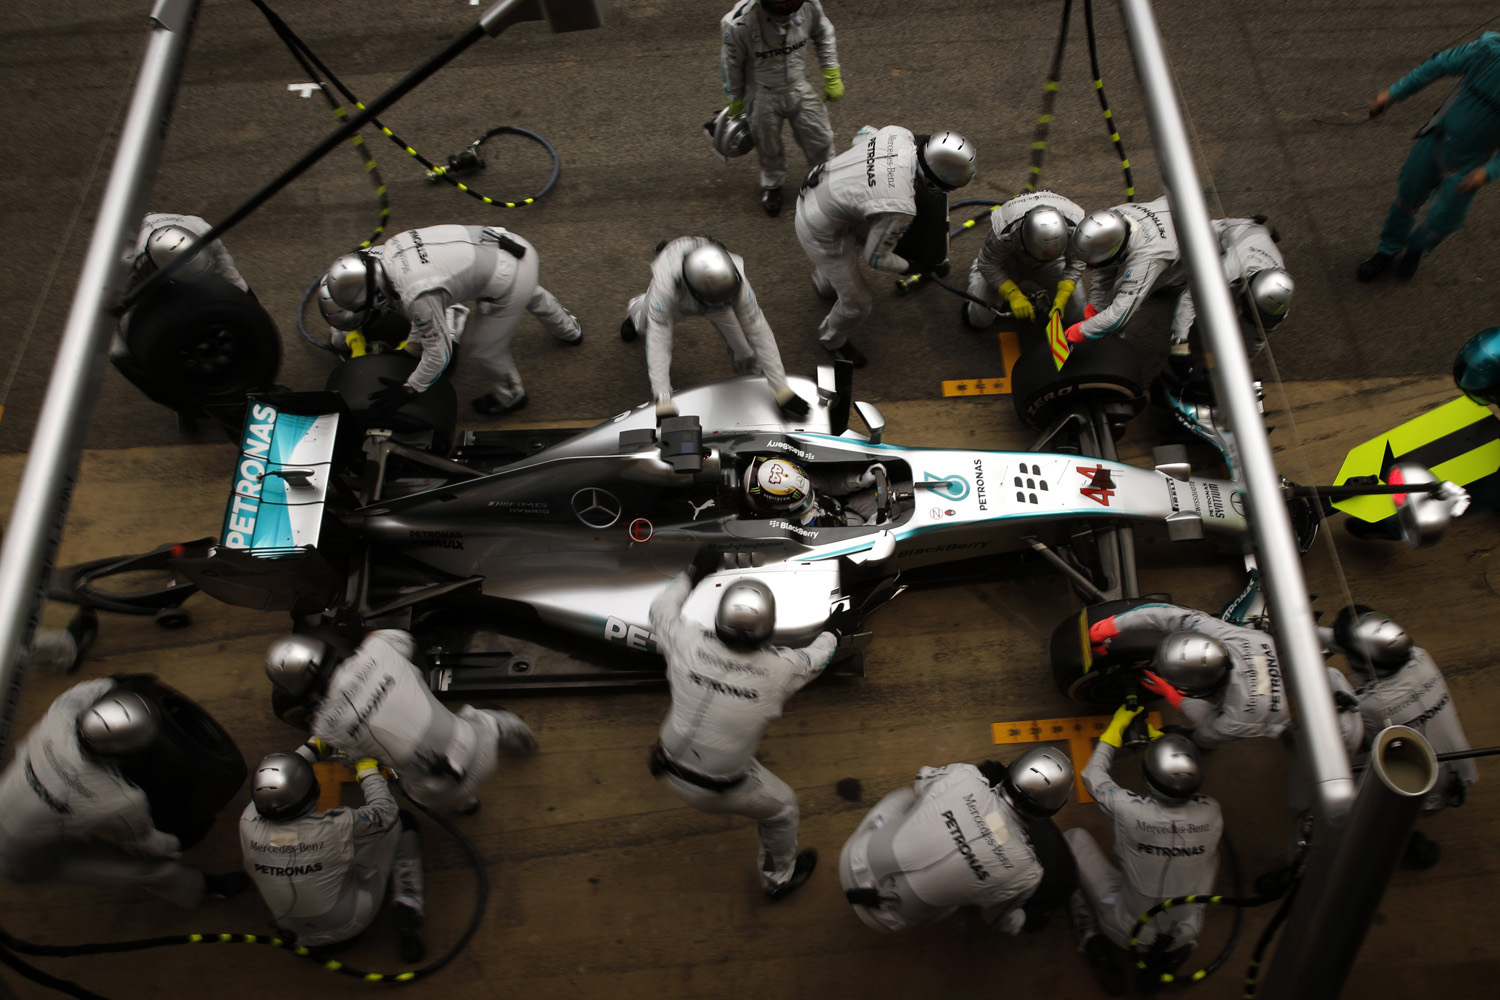 May 11, 2014. Mercedes driver Lewis Hamilton of Britain gets a pit service during the Spain Formula One Grand Prix at the Barcelona Catalunya racetrack in Montmelo, near Barcelona.